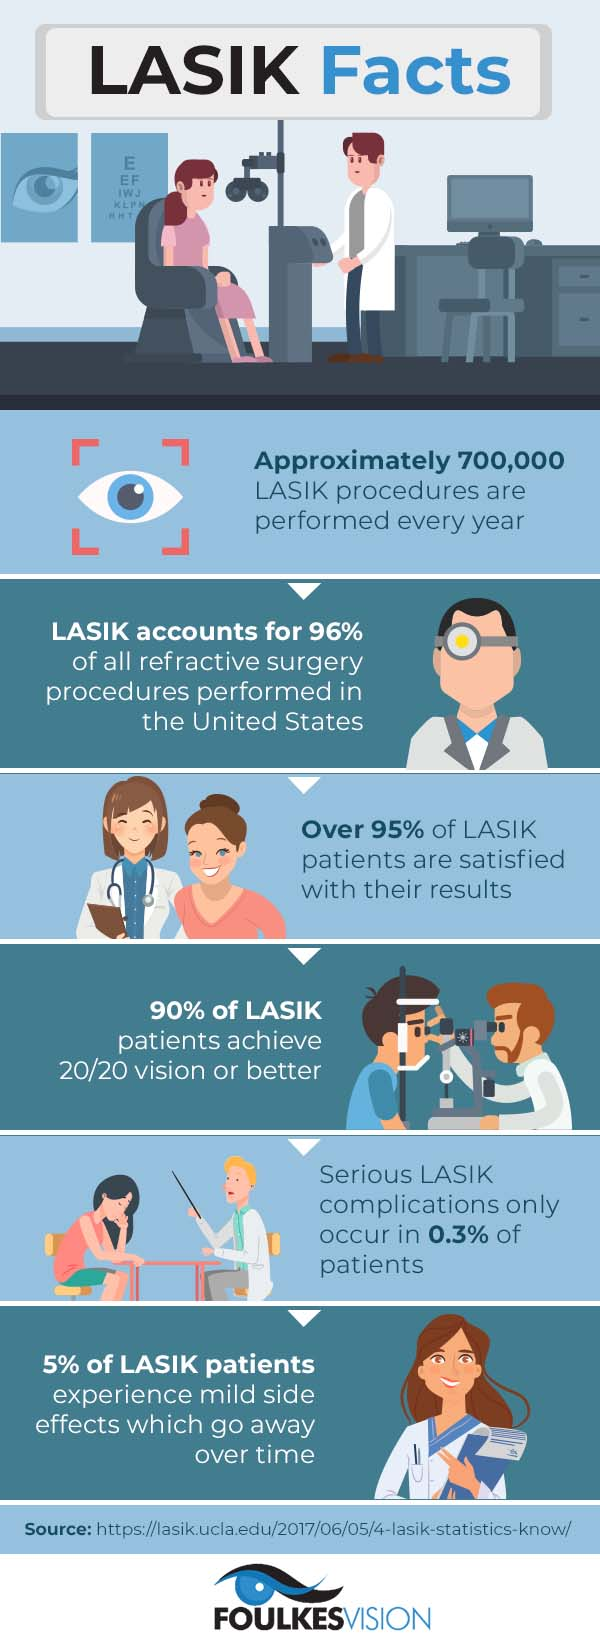 LASIK Facts infographic - Chicago laser eye surgeon